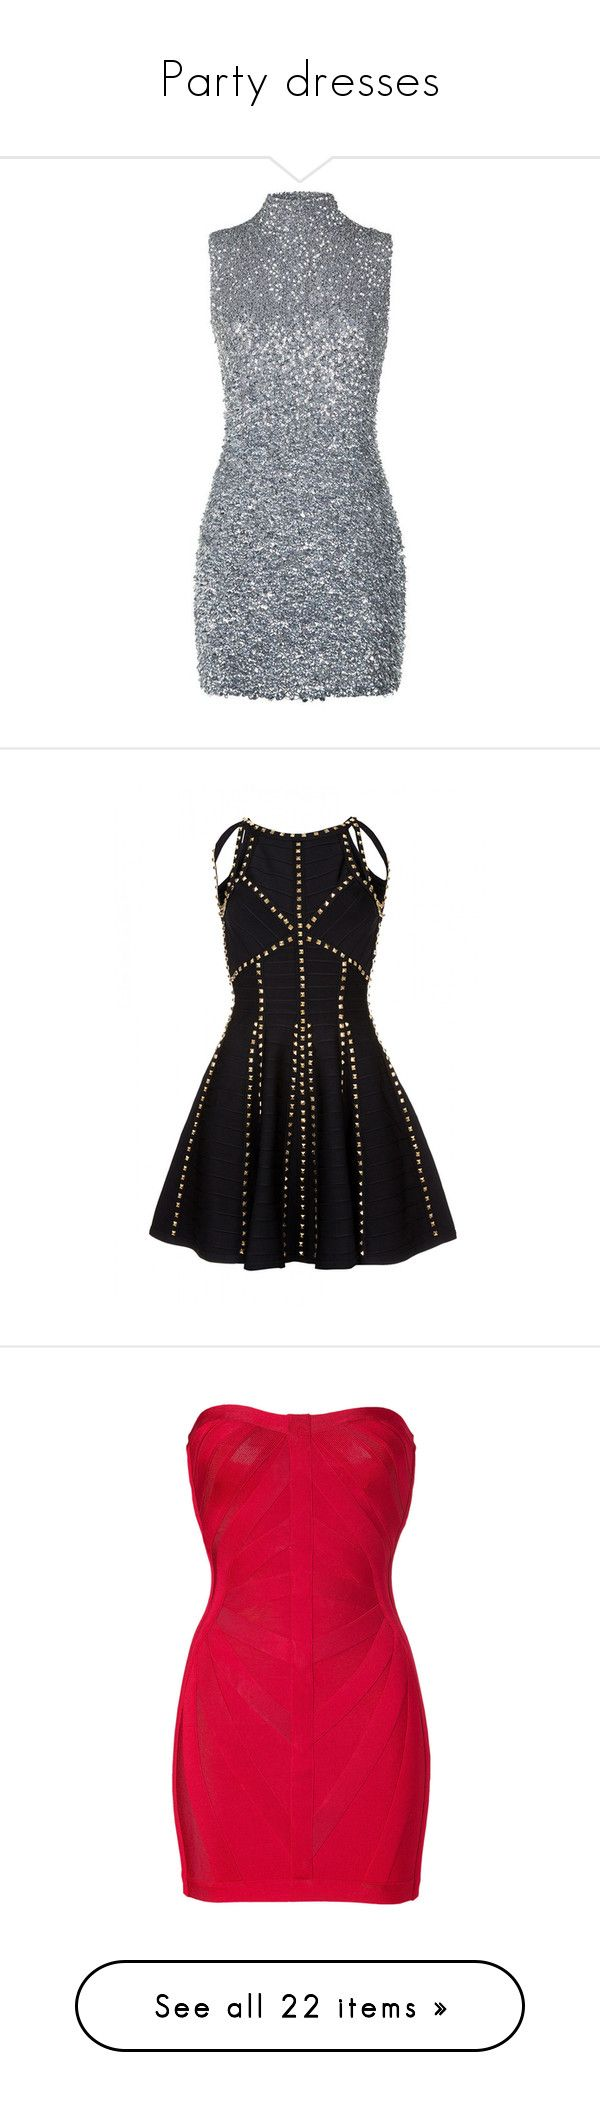 """""""Party dresses"""" by sangarest ❤ liked on Polyvore featuring dresses, vestidos, sparkly dress, embellished cocktail dress, high neck cocktail dress, mini dress, high neck dress, cutout bandage dress, gold beaded cocktail dress and gold dress"""